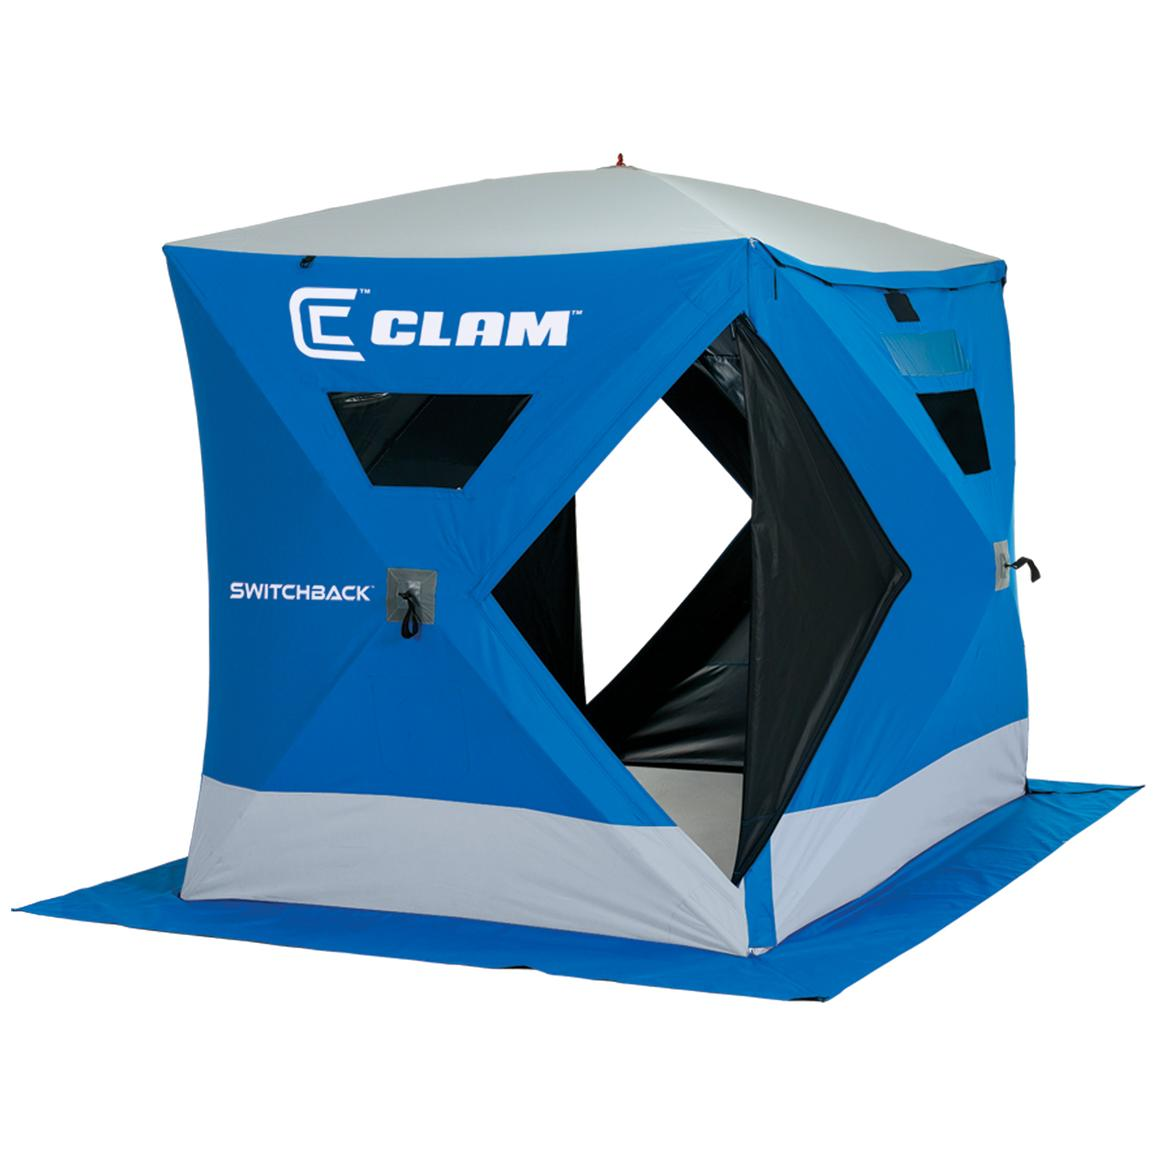 Clam™ Switchback 6x8' / 8x10' Expandable Hub Pop-up 6-man Ice Shelter